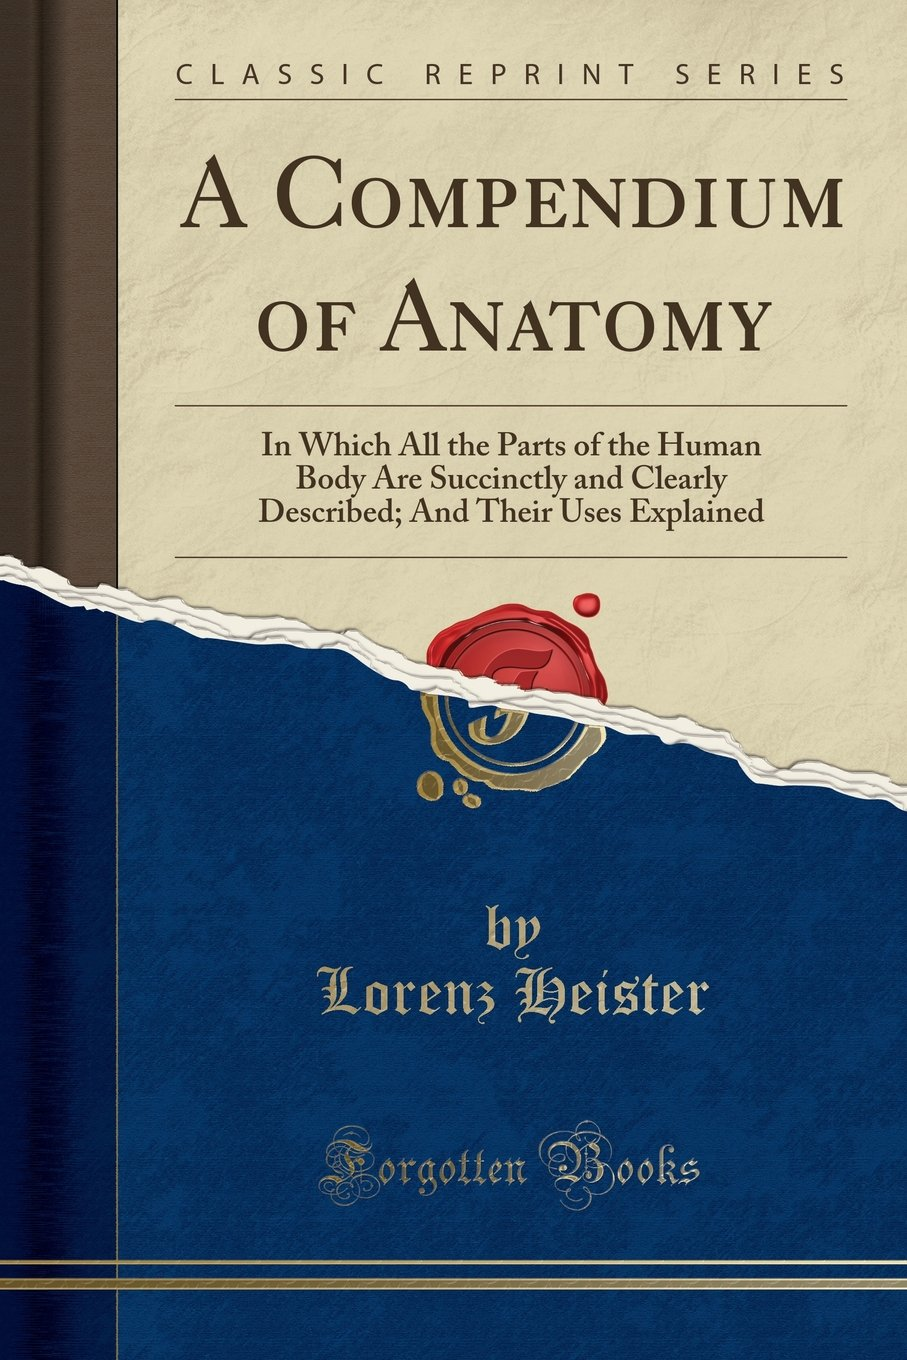 Download A Compendium of Anatomy: In Which All the Parts of the Human Body Are Succinctly and Clearly Described; And Their Uses Explained (Classic Reprint) pdf epub